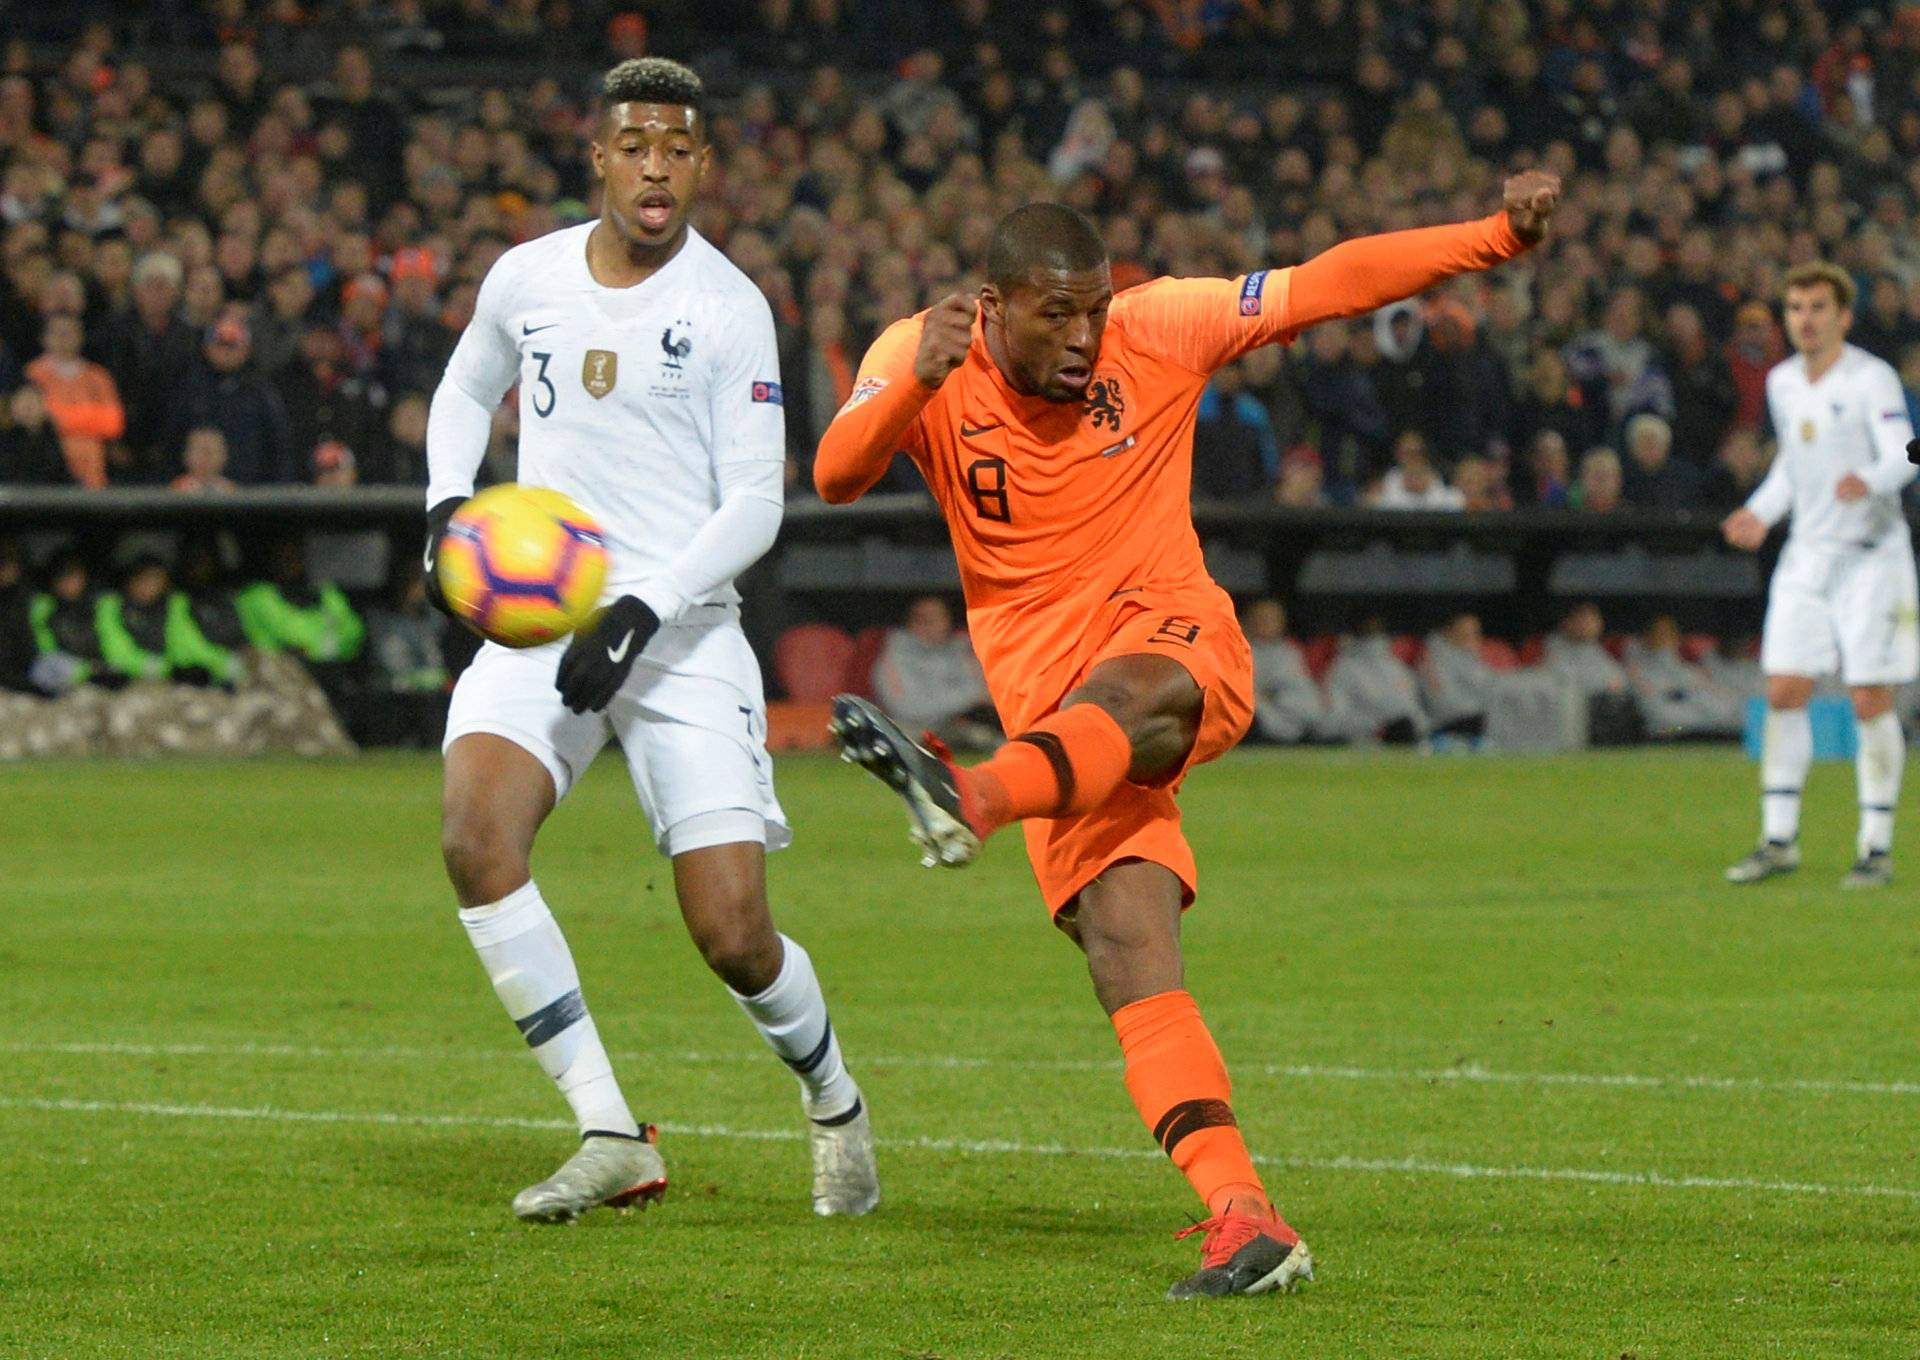 UEFA Nations League - League A - Group 1 - Netherlands v France